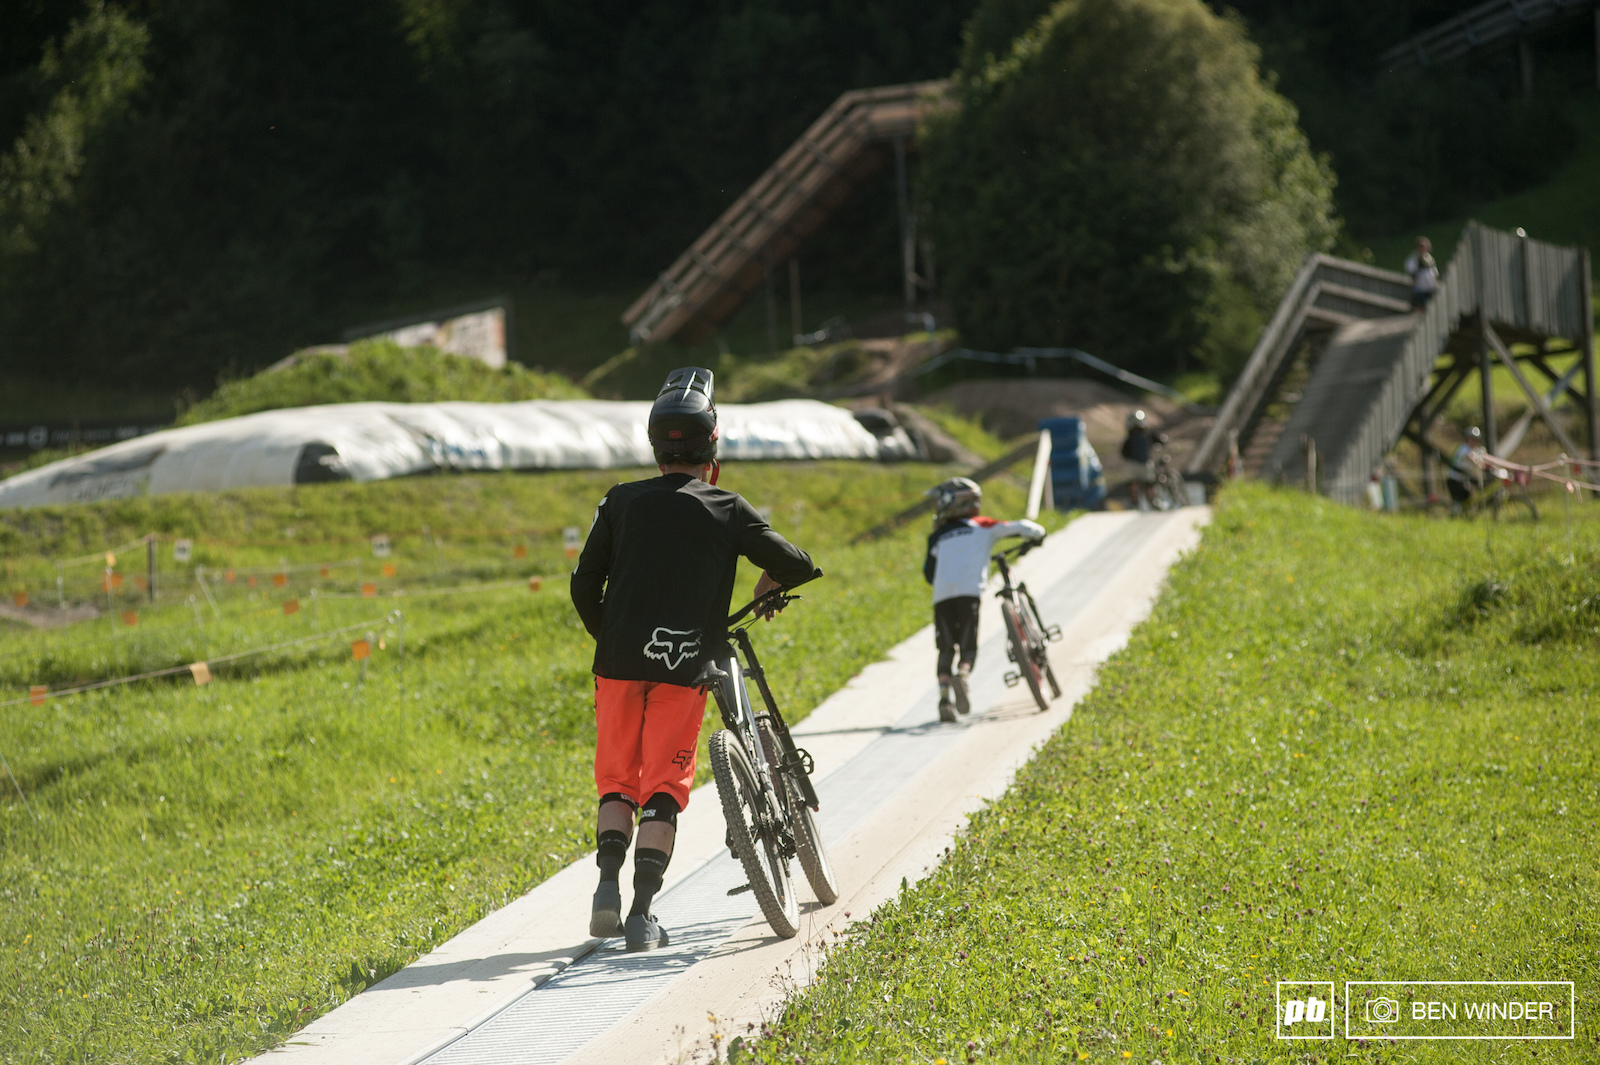 Kids get to experience the fun of a day at the bike park too with this safe and simple magic carpet lift.